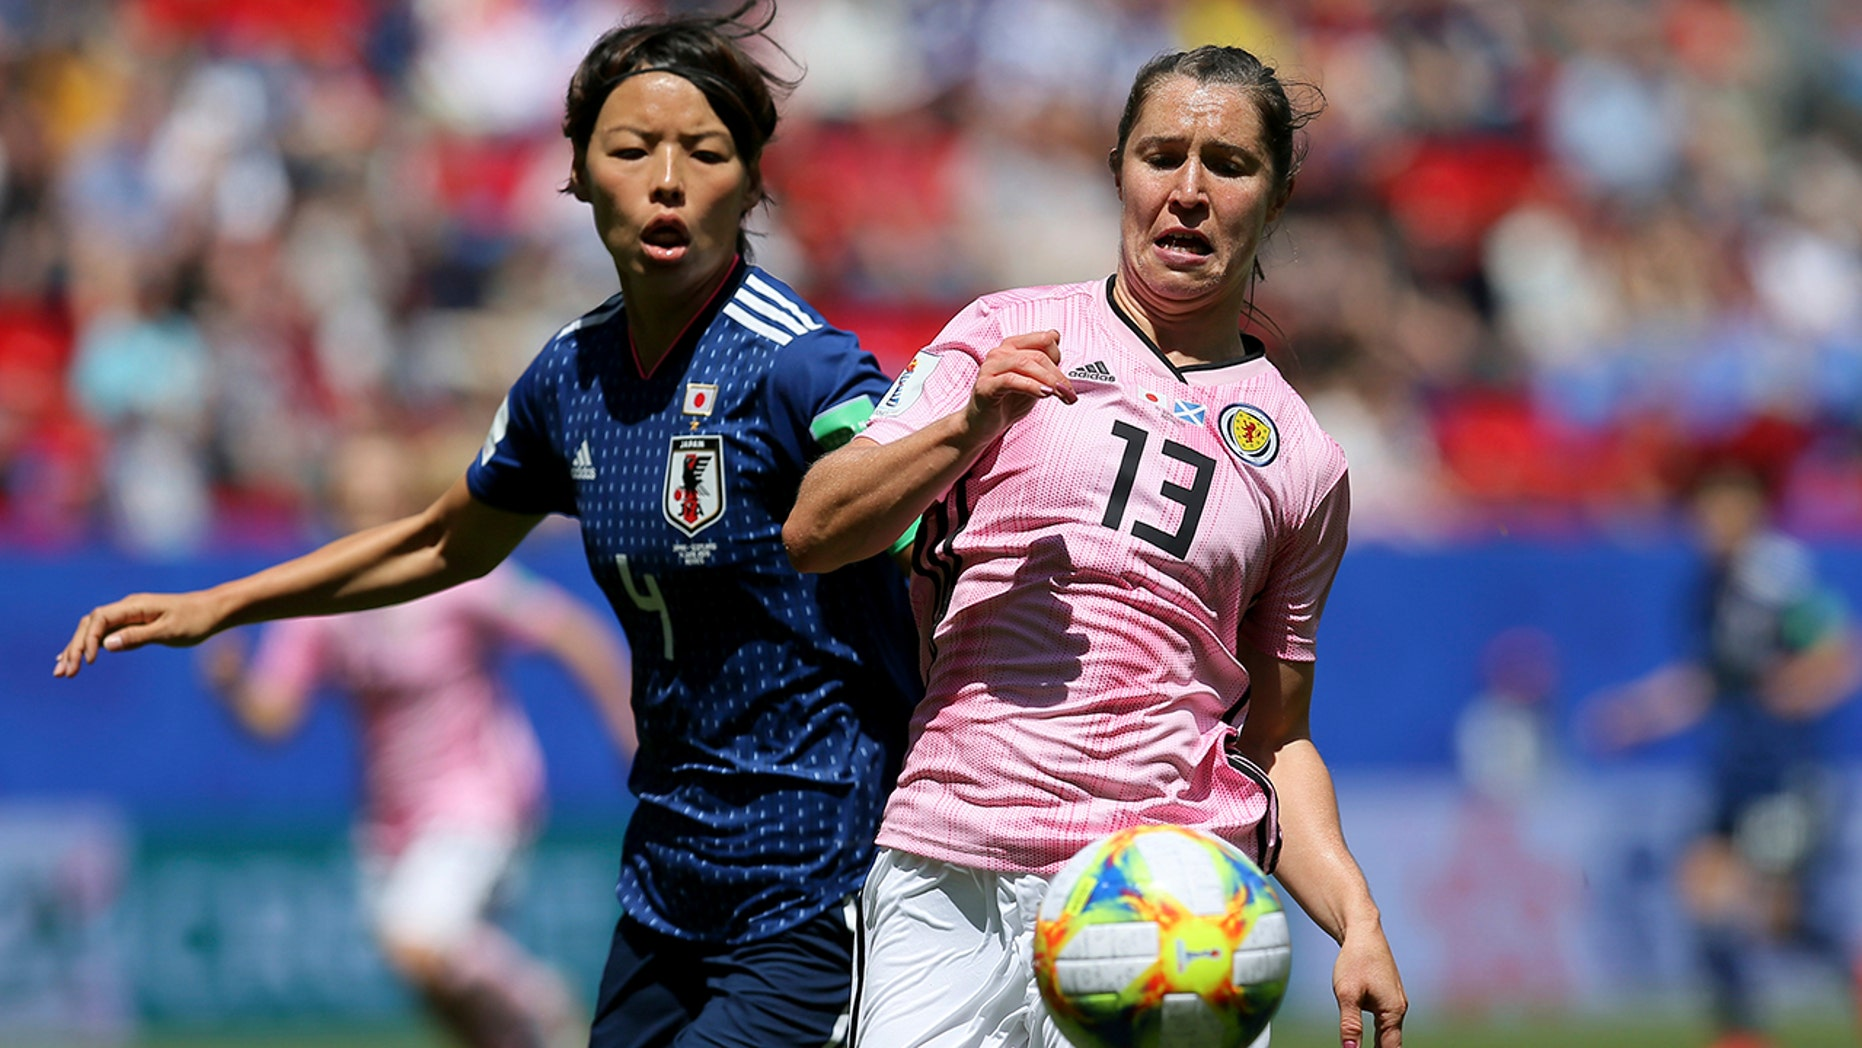 Scotland's Jane Ross, right, is challenged by Japan's Saki Kumagai during a Women's World Cup Group D soccer compare between Japan and Scotland during a Roazhon Park in Rennes, France, Friday, Jun 14, 2019. (AP Photo/David Vincent)